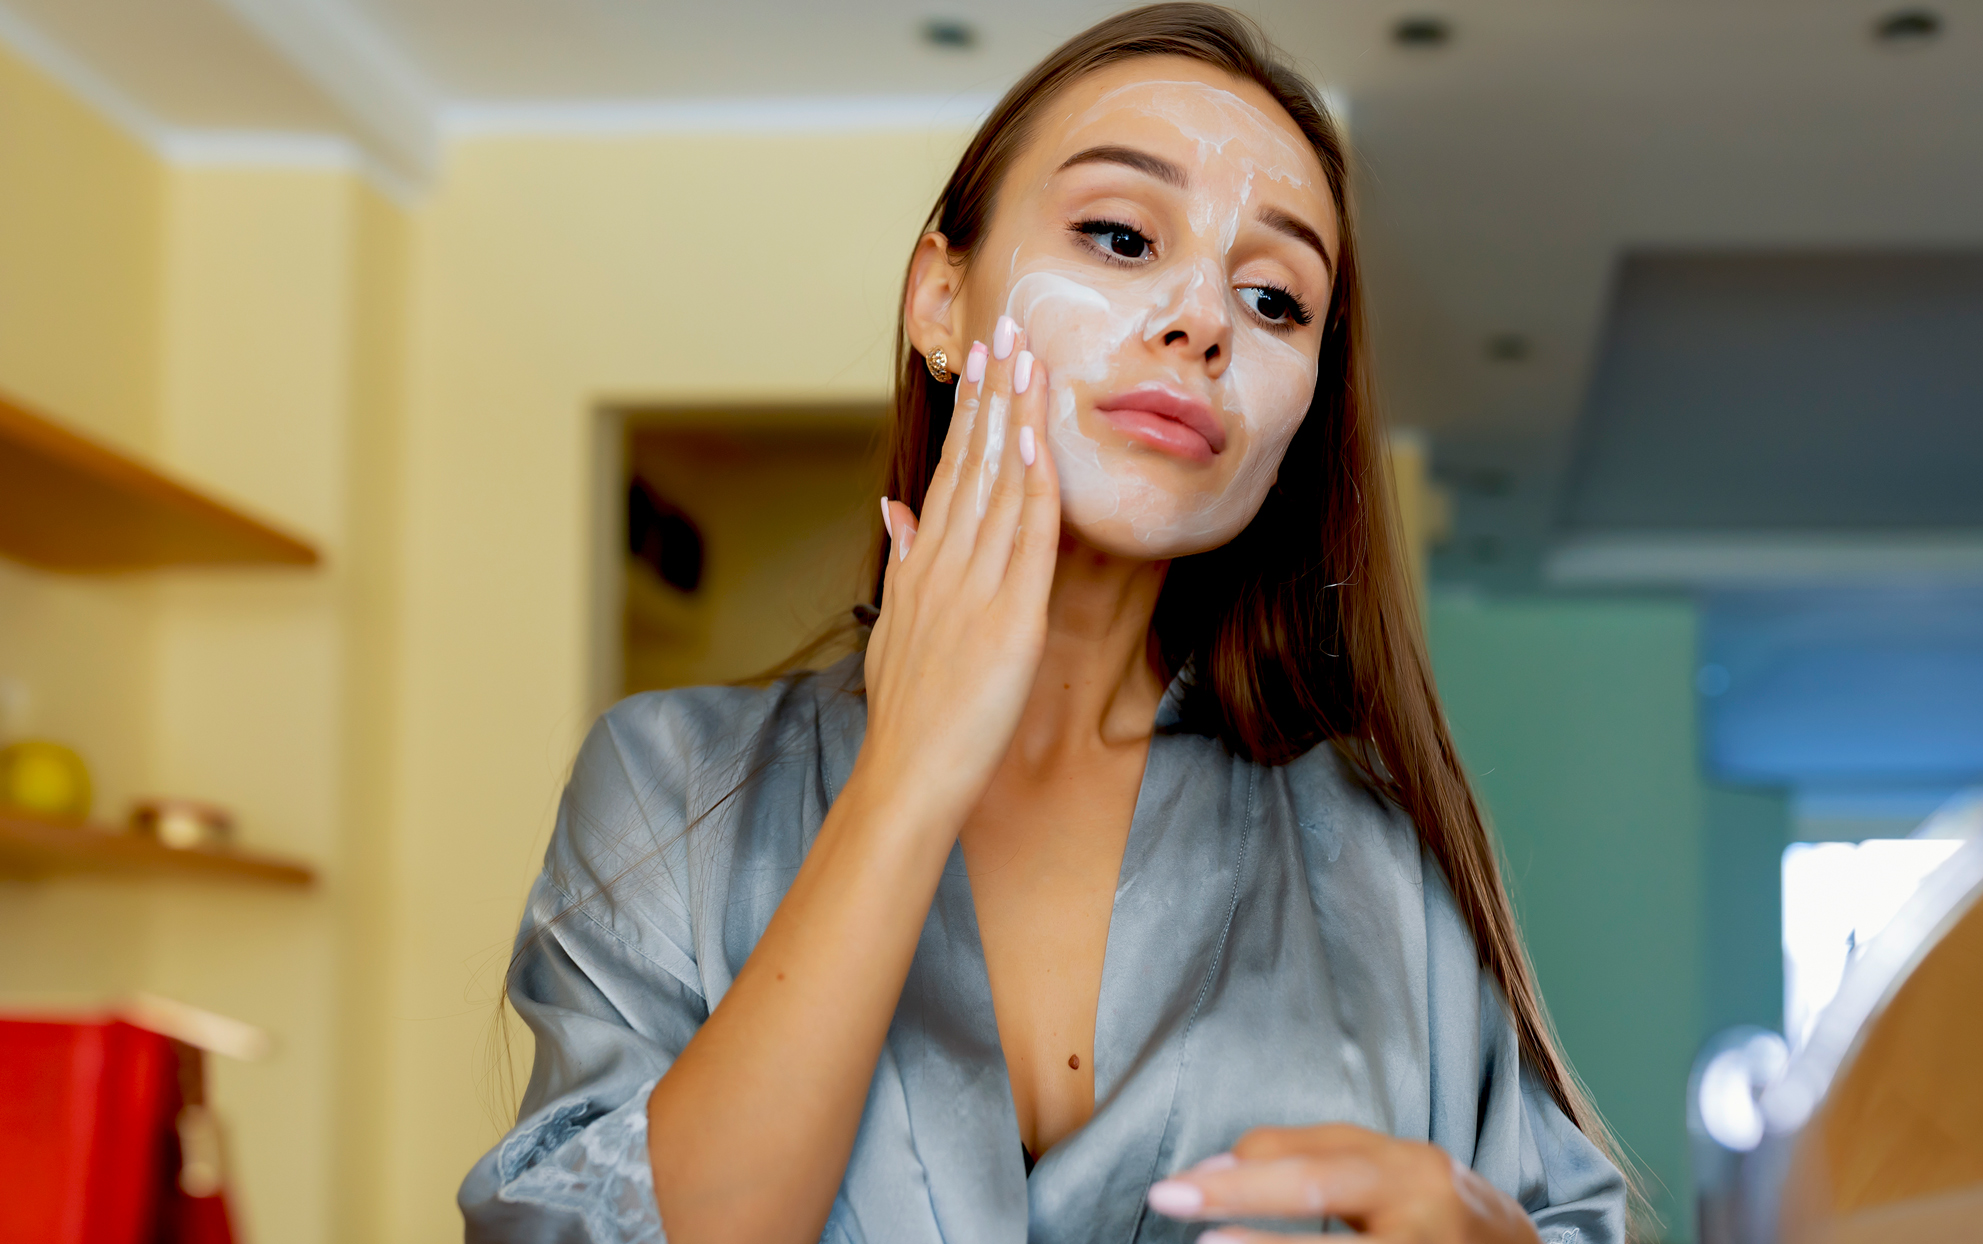 Woman applying a creamy face mask to her skin